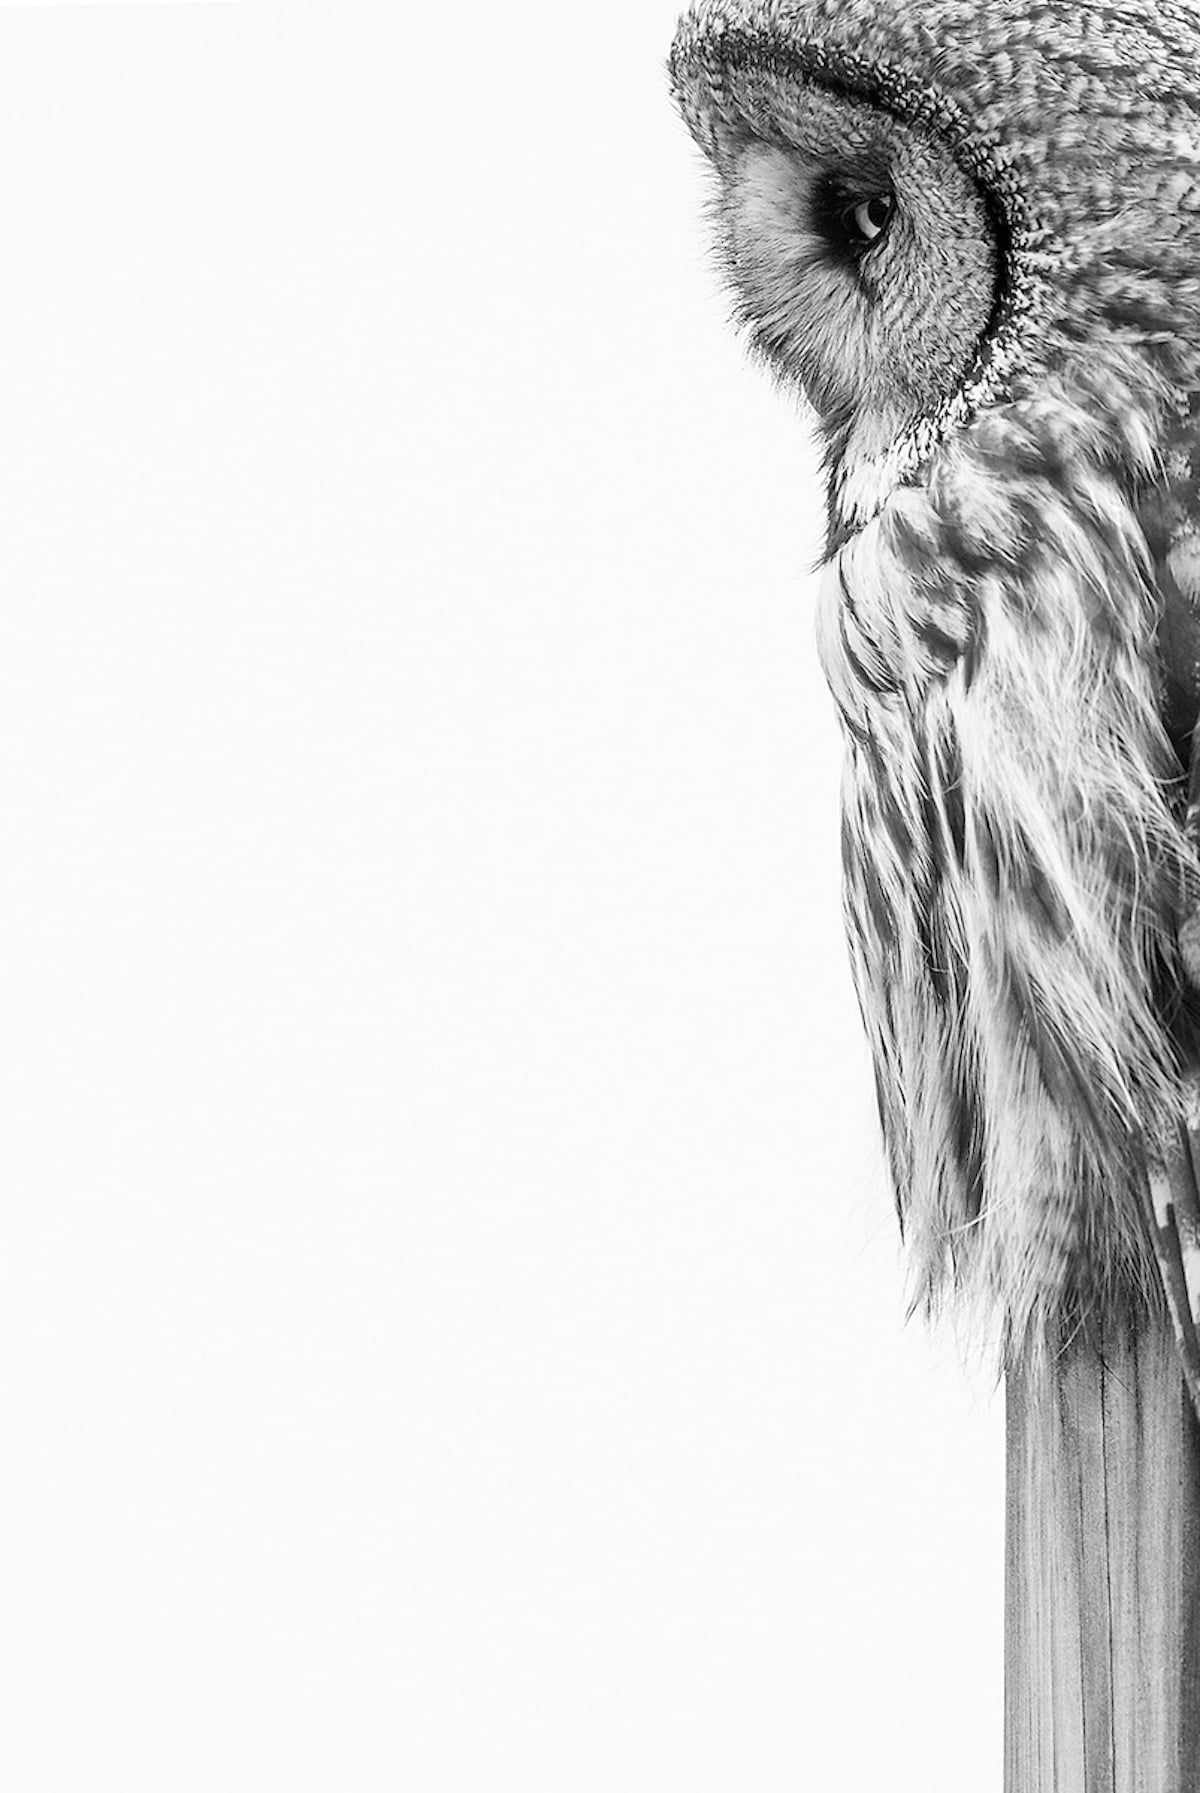 Black and White Portrait of Great Grey Owl